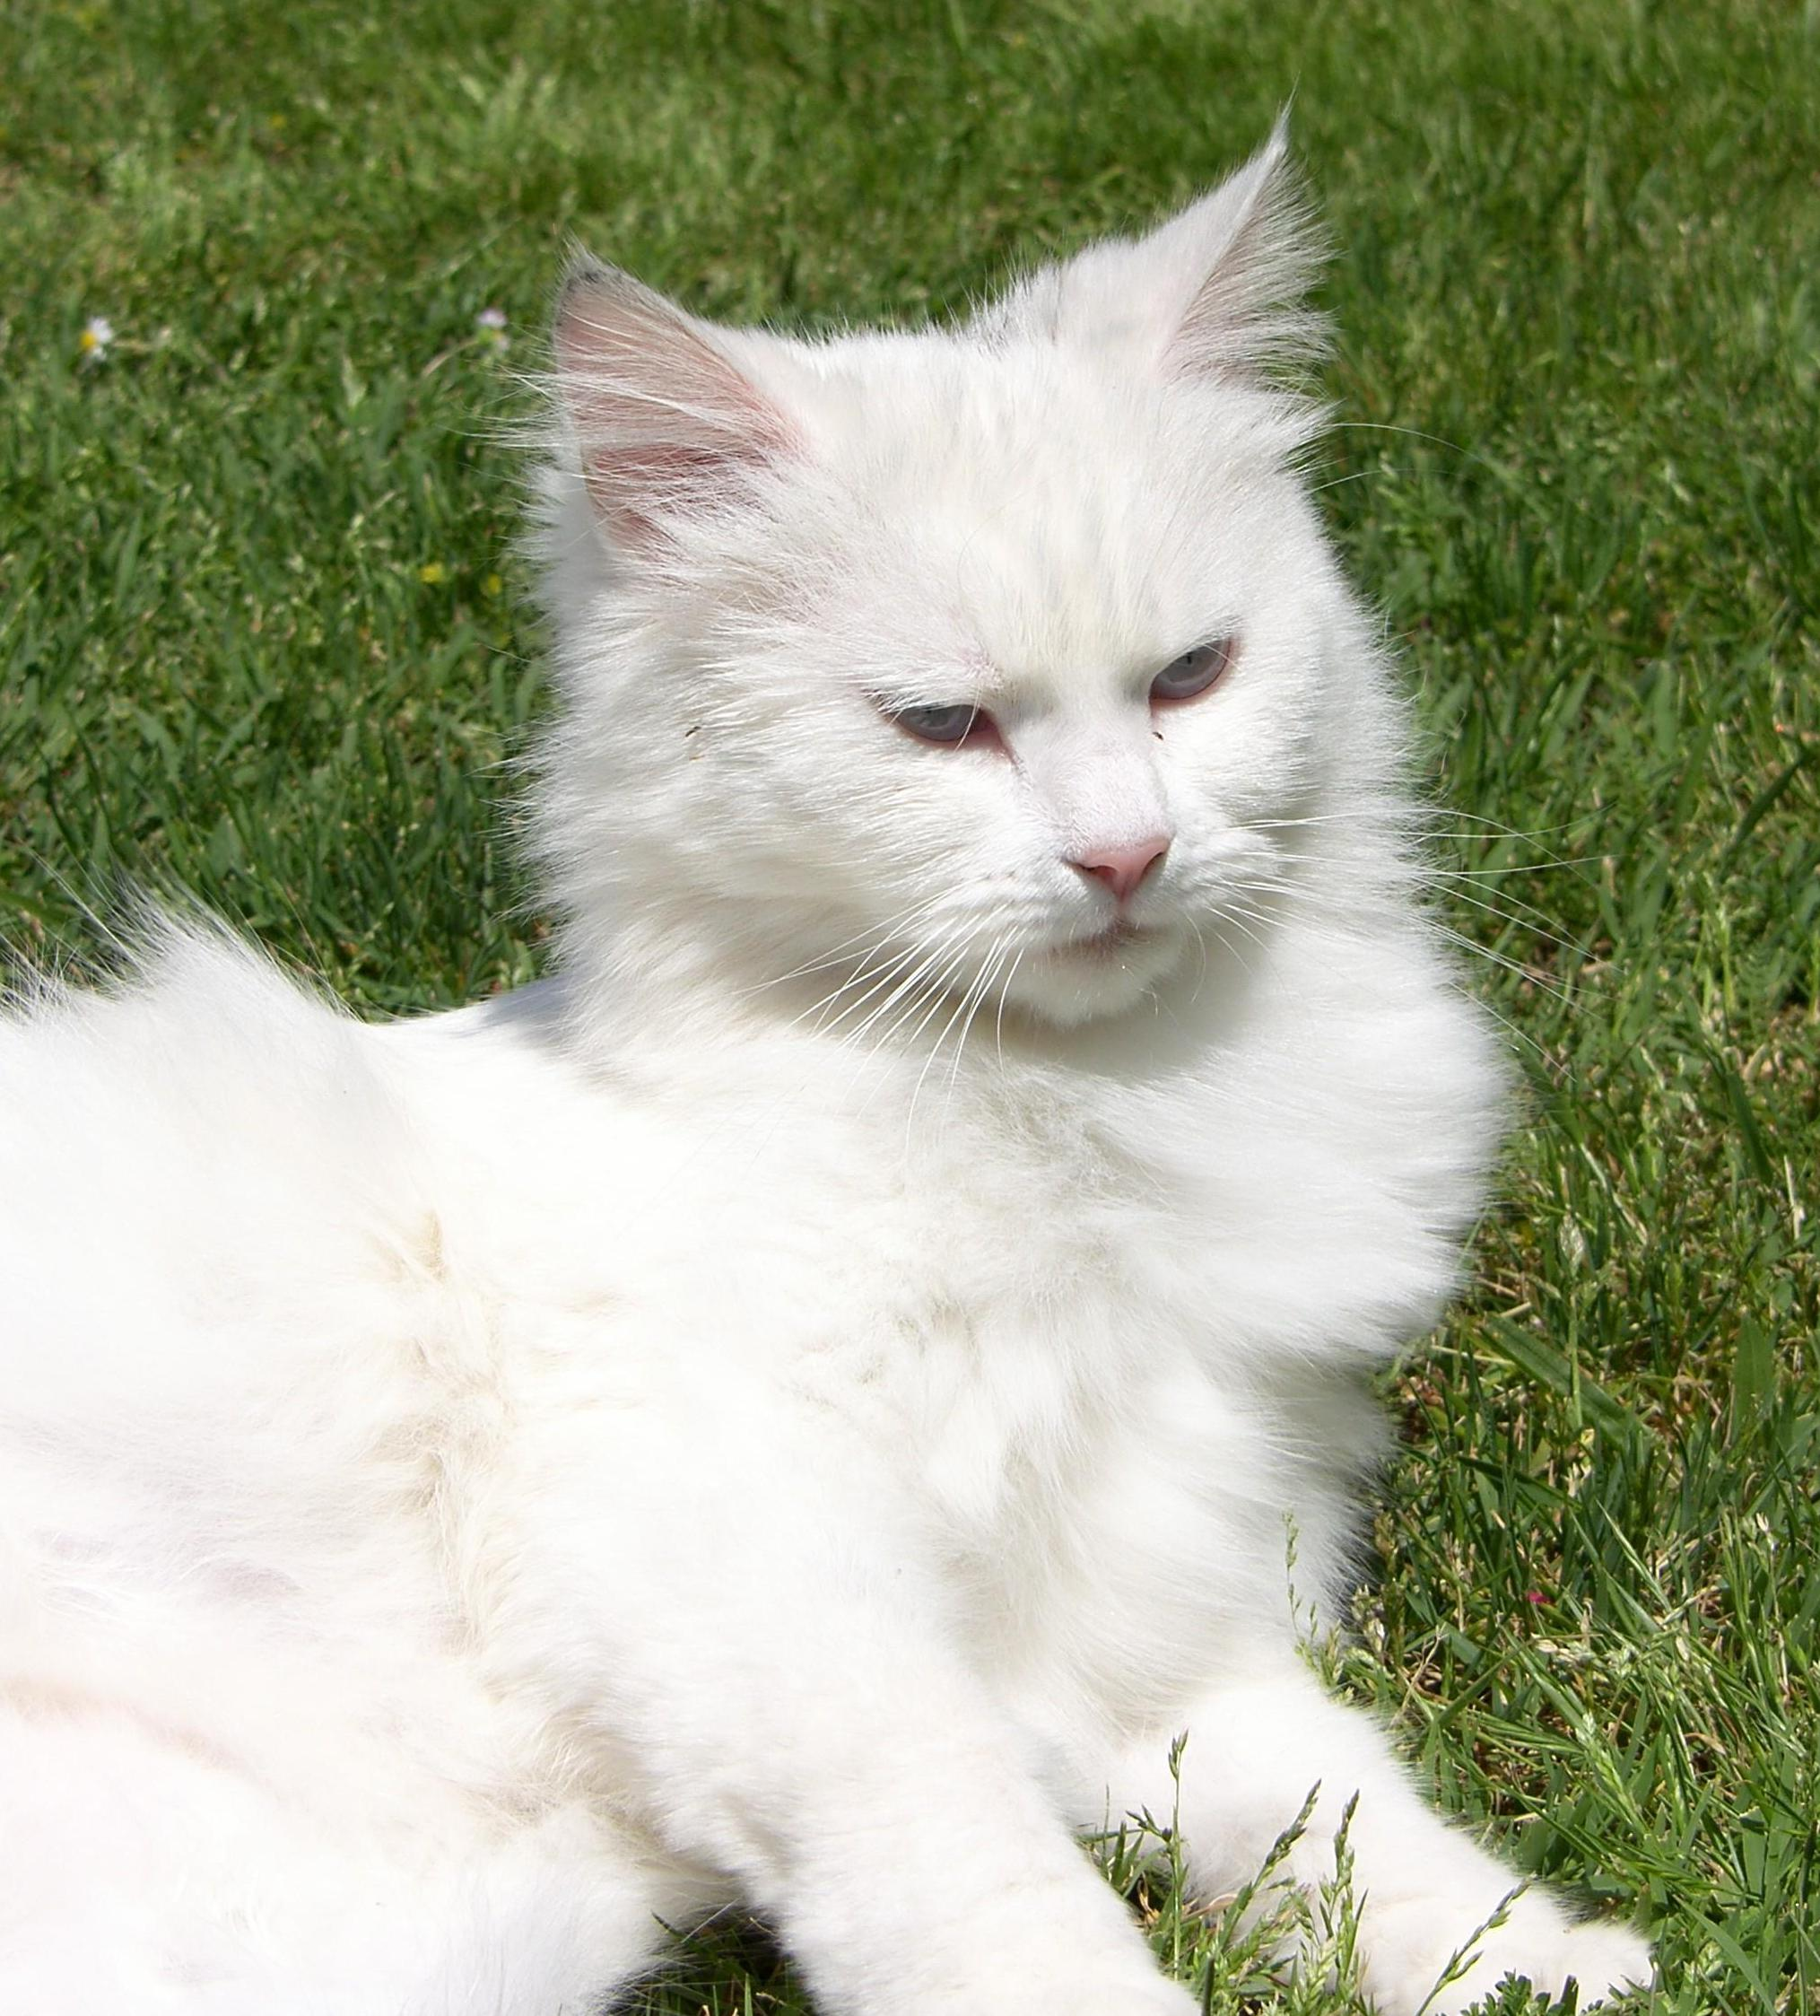 white cat, cute, fur, grass, persian cat, animal, pet, kitten, eye, whisker